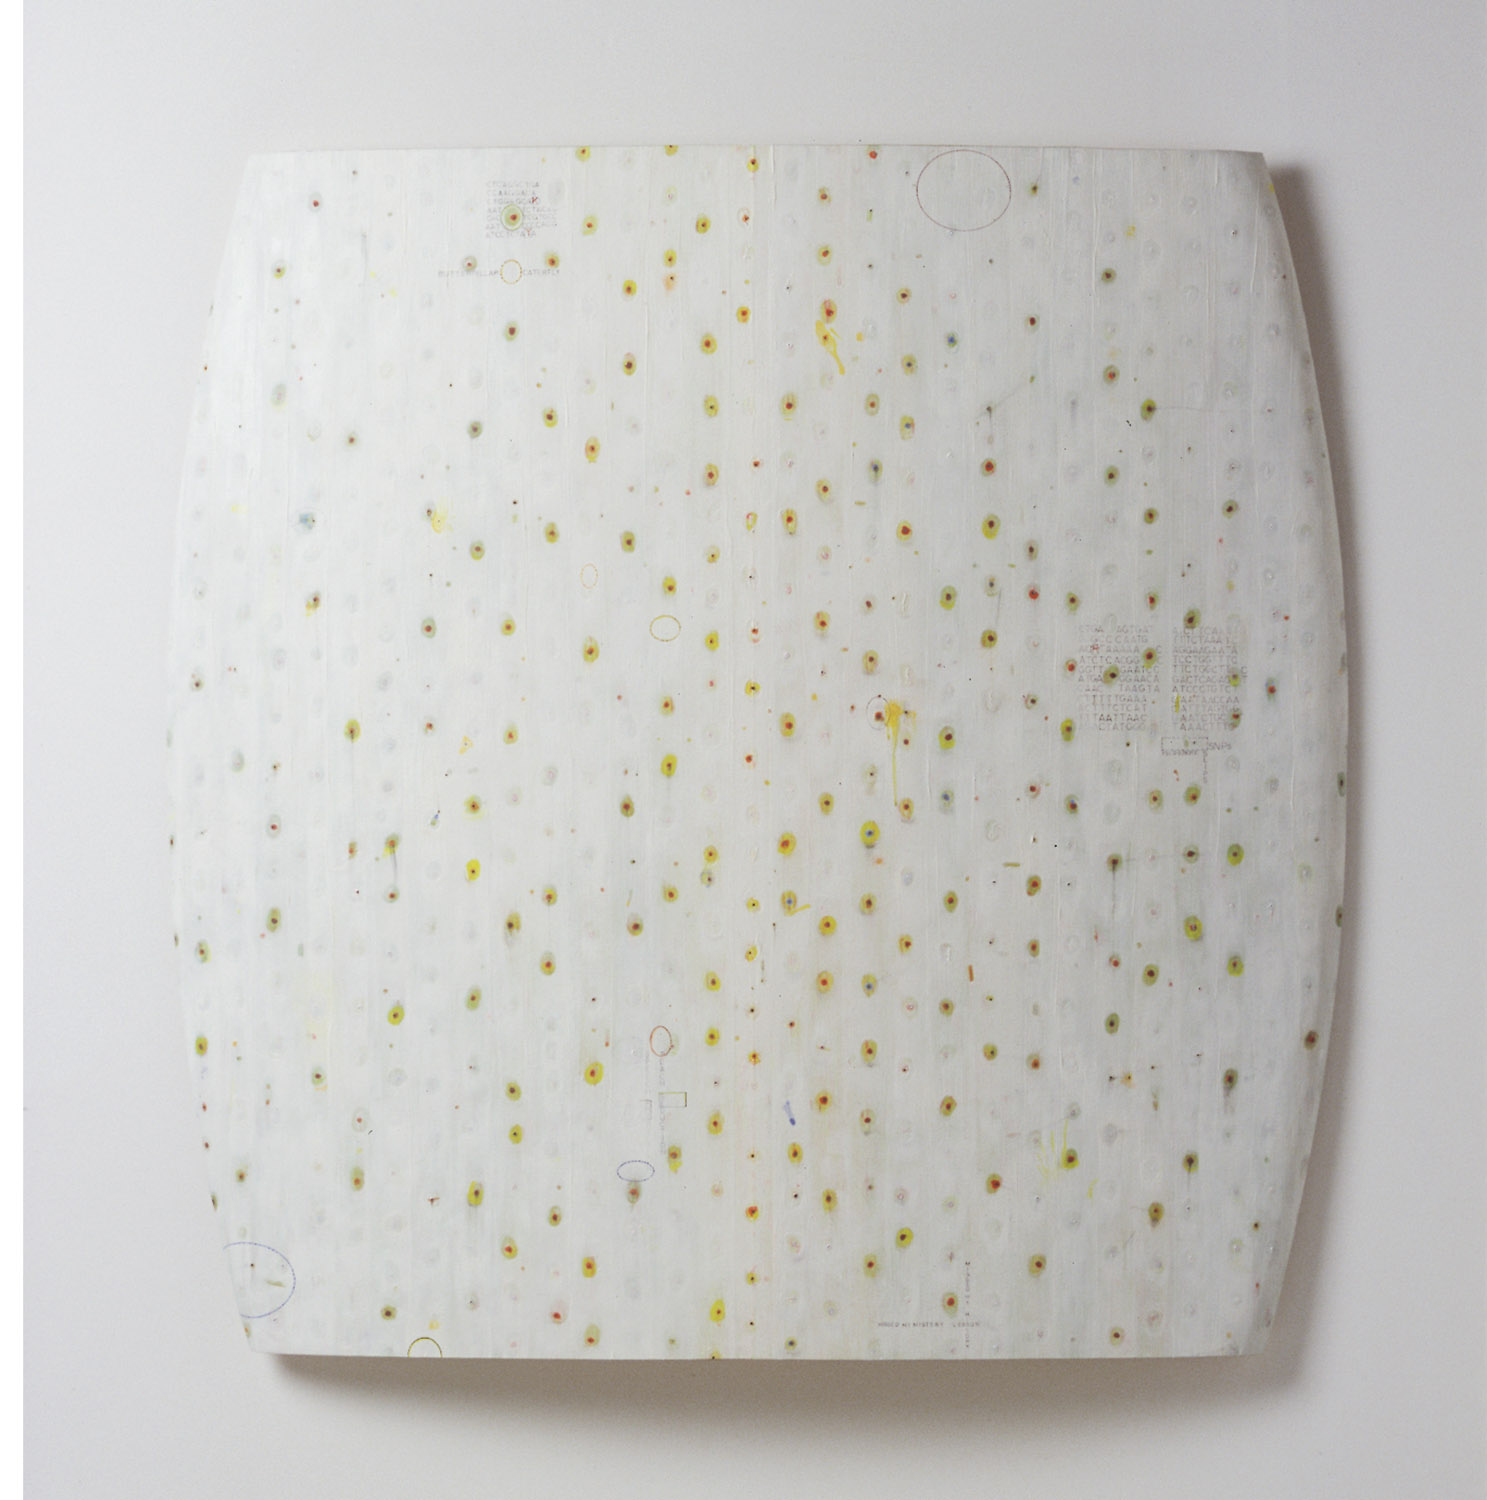 smear (3) , paint, ink, sheet cork, molded plywood, 44.5 x 45 x 2 inches, 2000